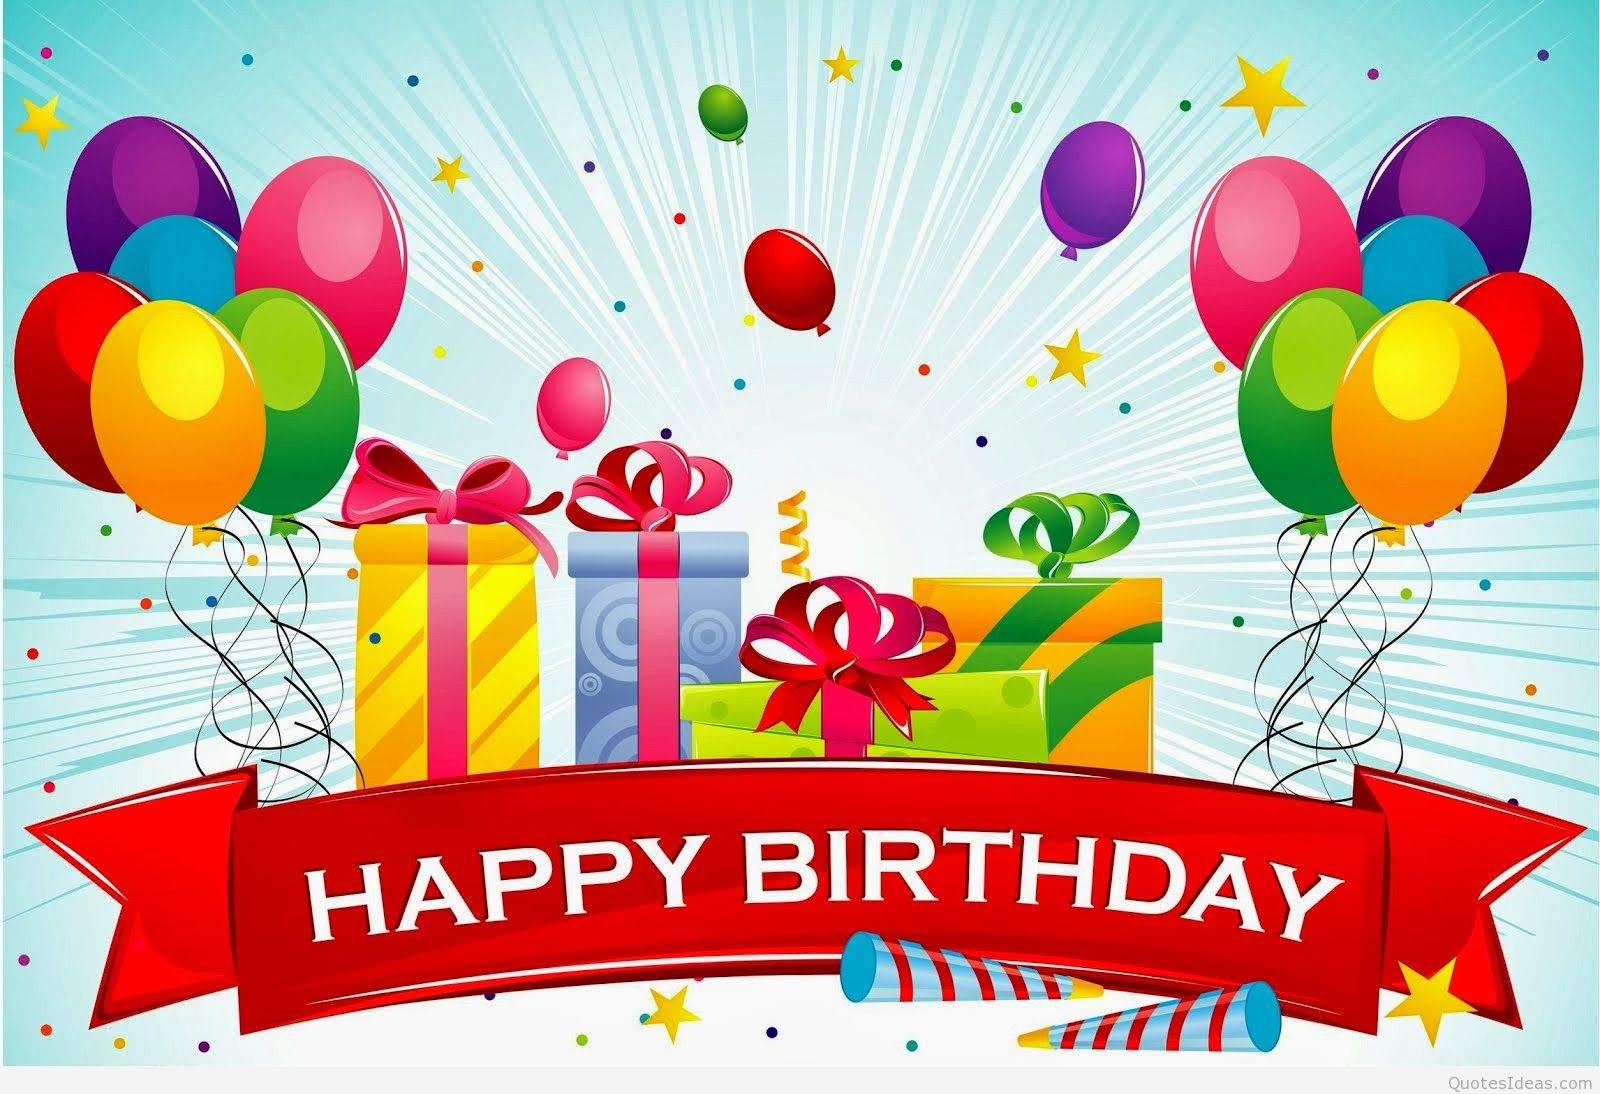 happy birthday images wallpapers ; free-wallpaper-happy-birthday-12